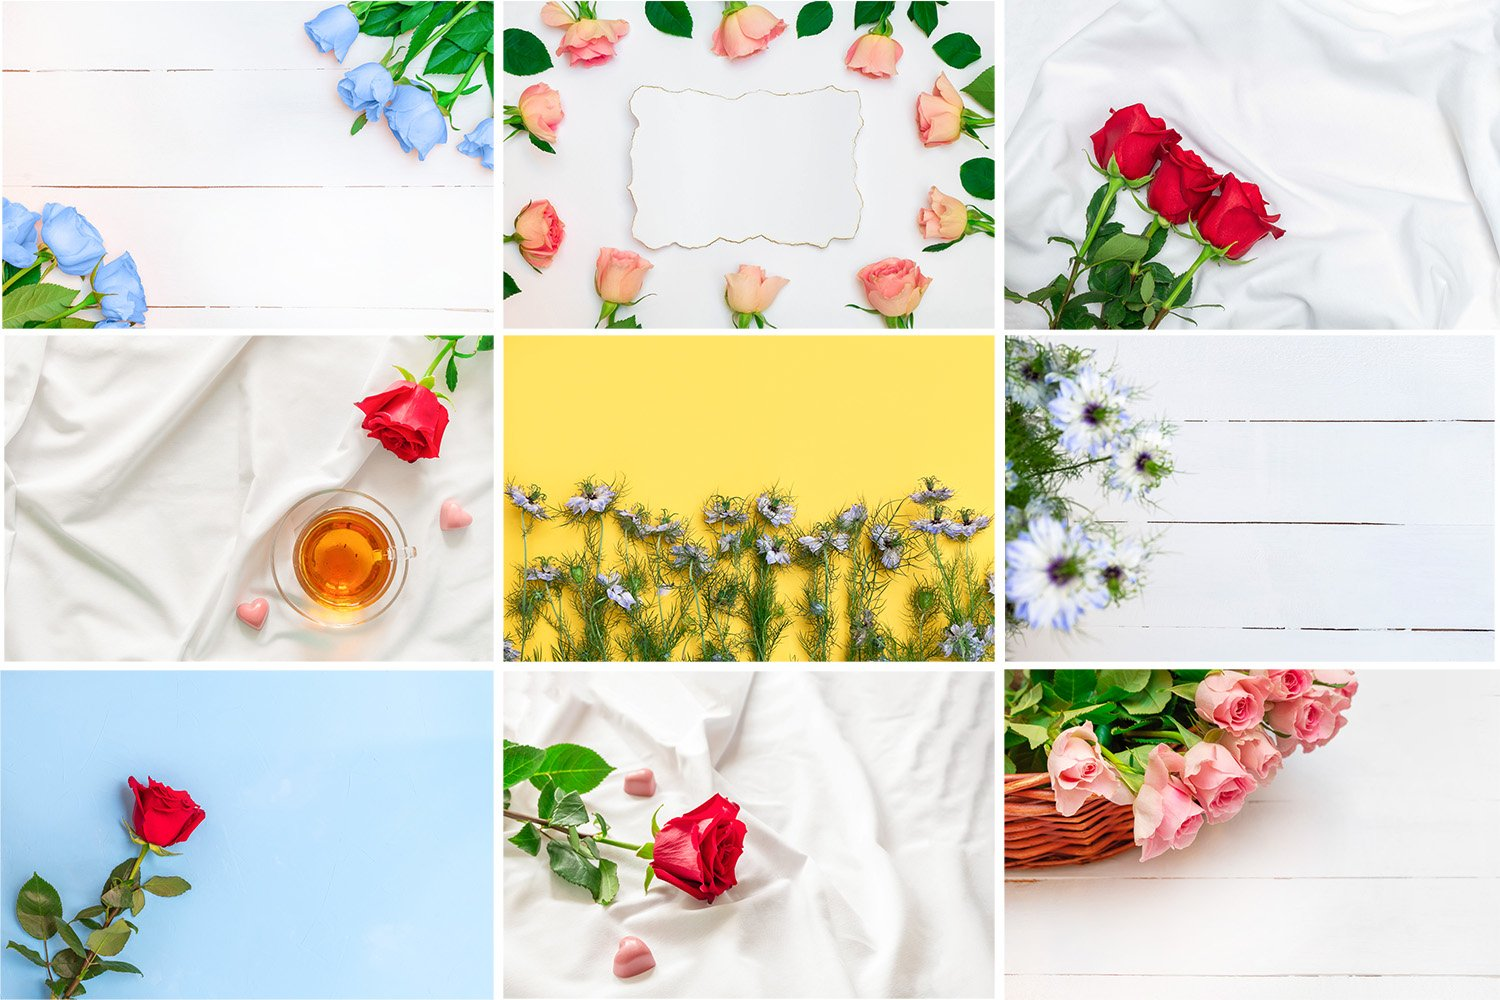 Bundle of 9 romantic images with flowers backgrounds example image 1